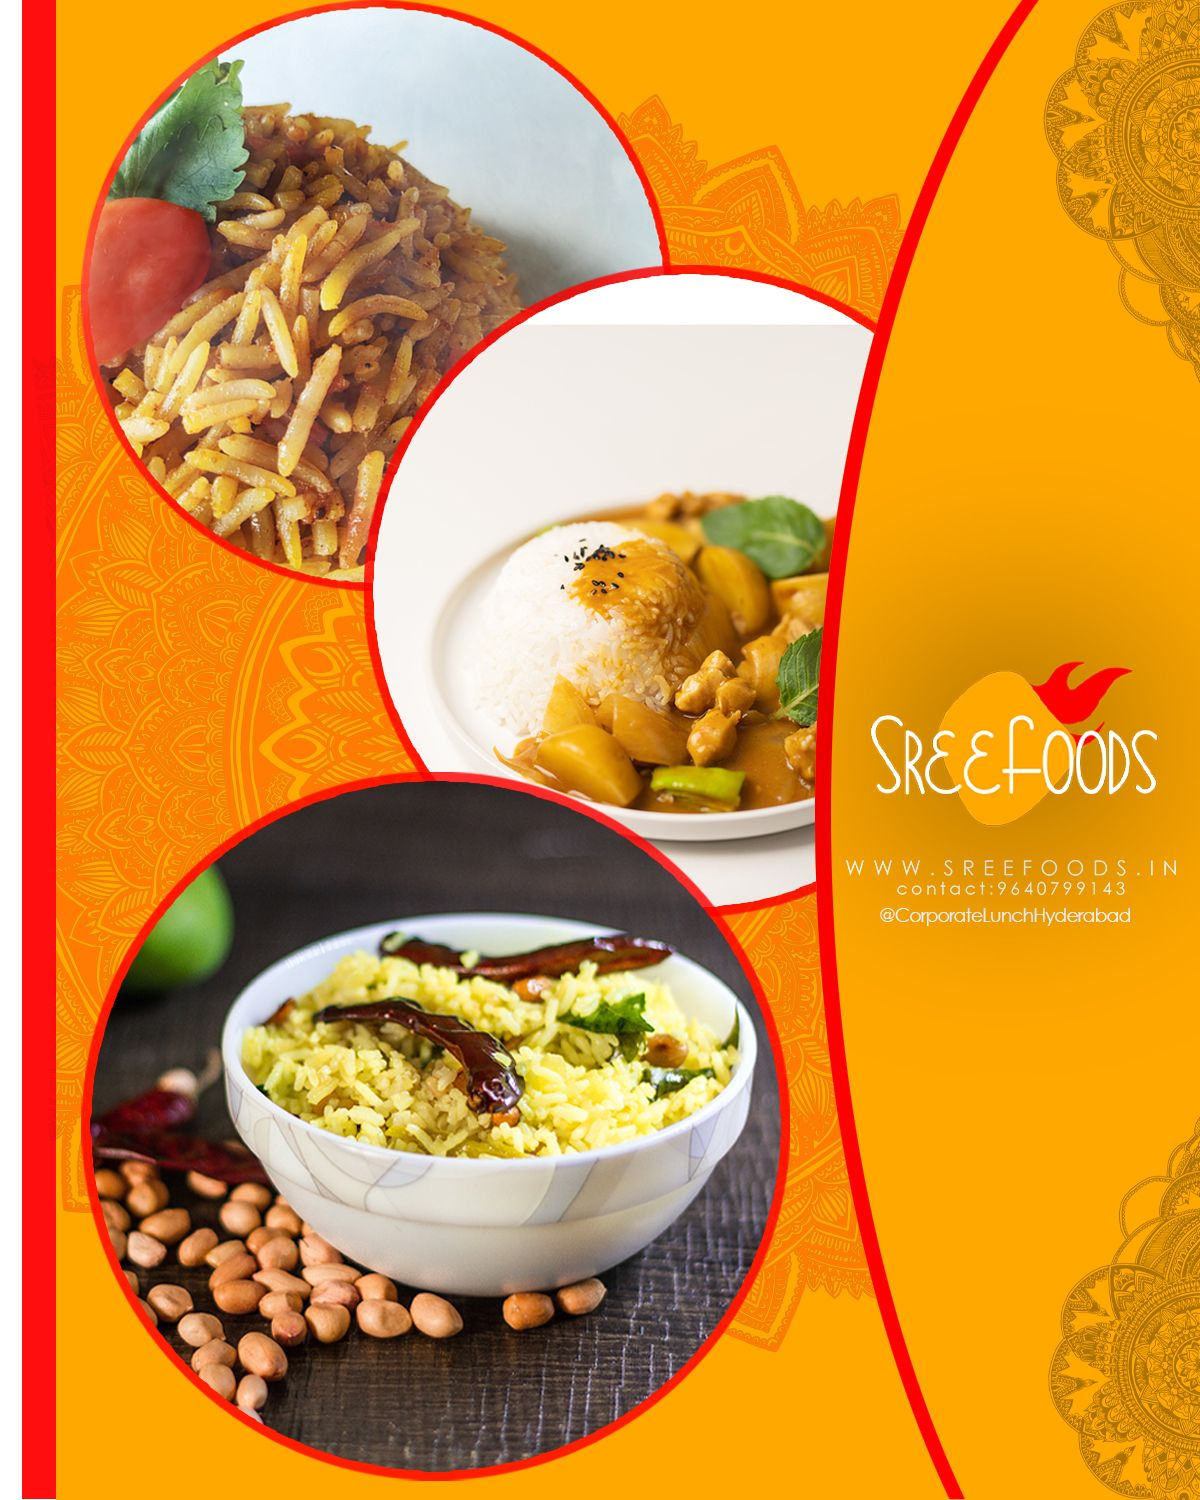 Sreefoods corporate catering #officecatering #officelunch #corporateevents #corporatecatering